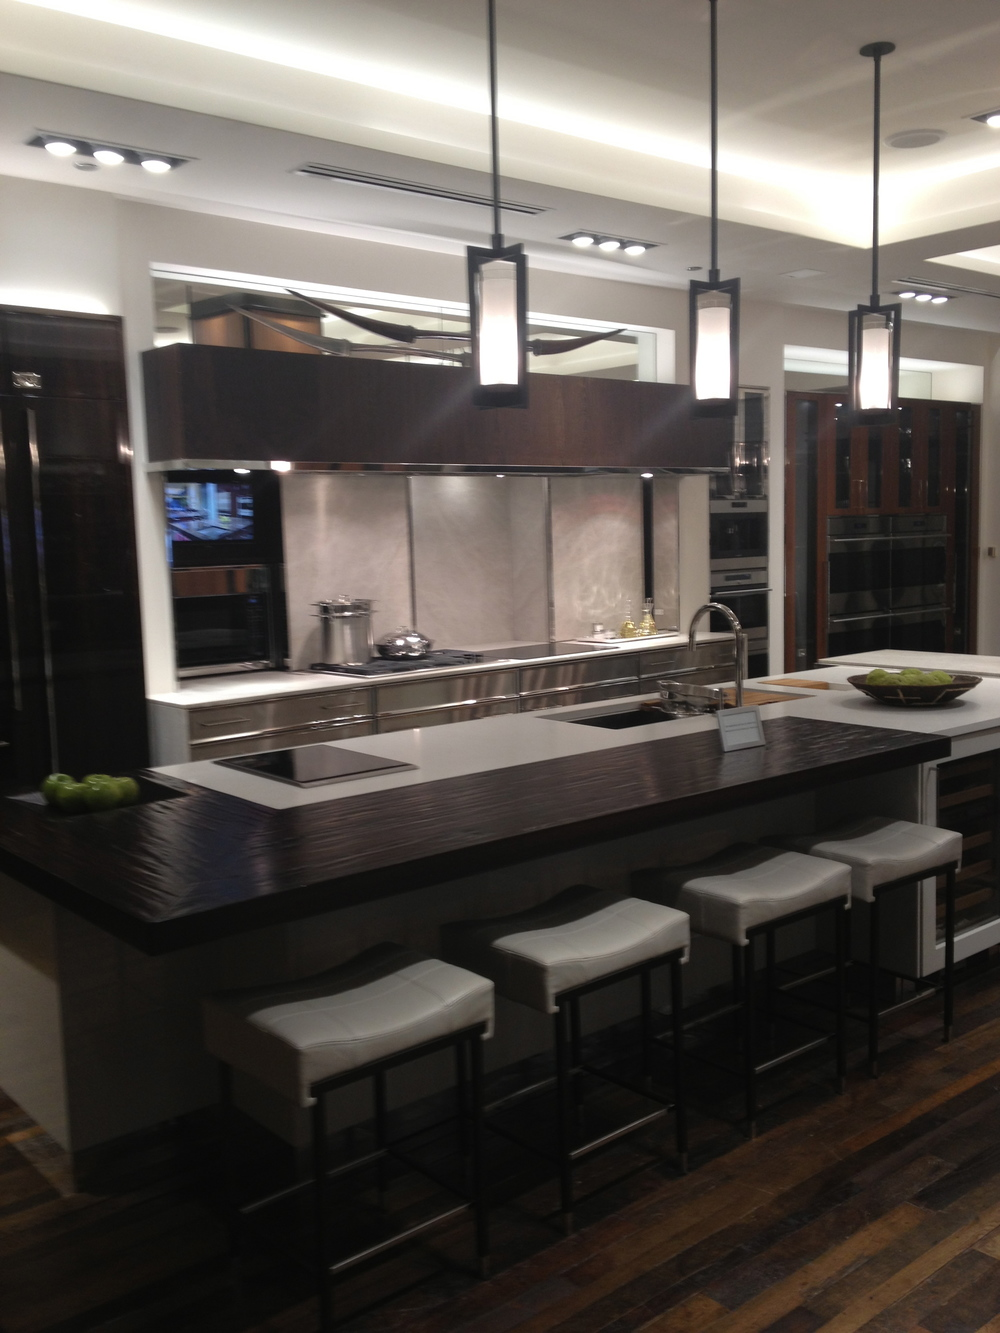 This showroom kitchen was not only practical but beautiful.  I love the mix of the  materials on the counter.